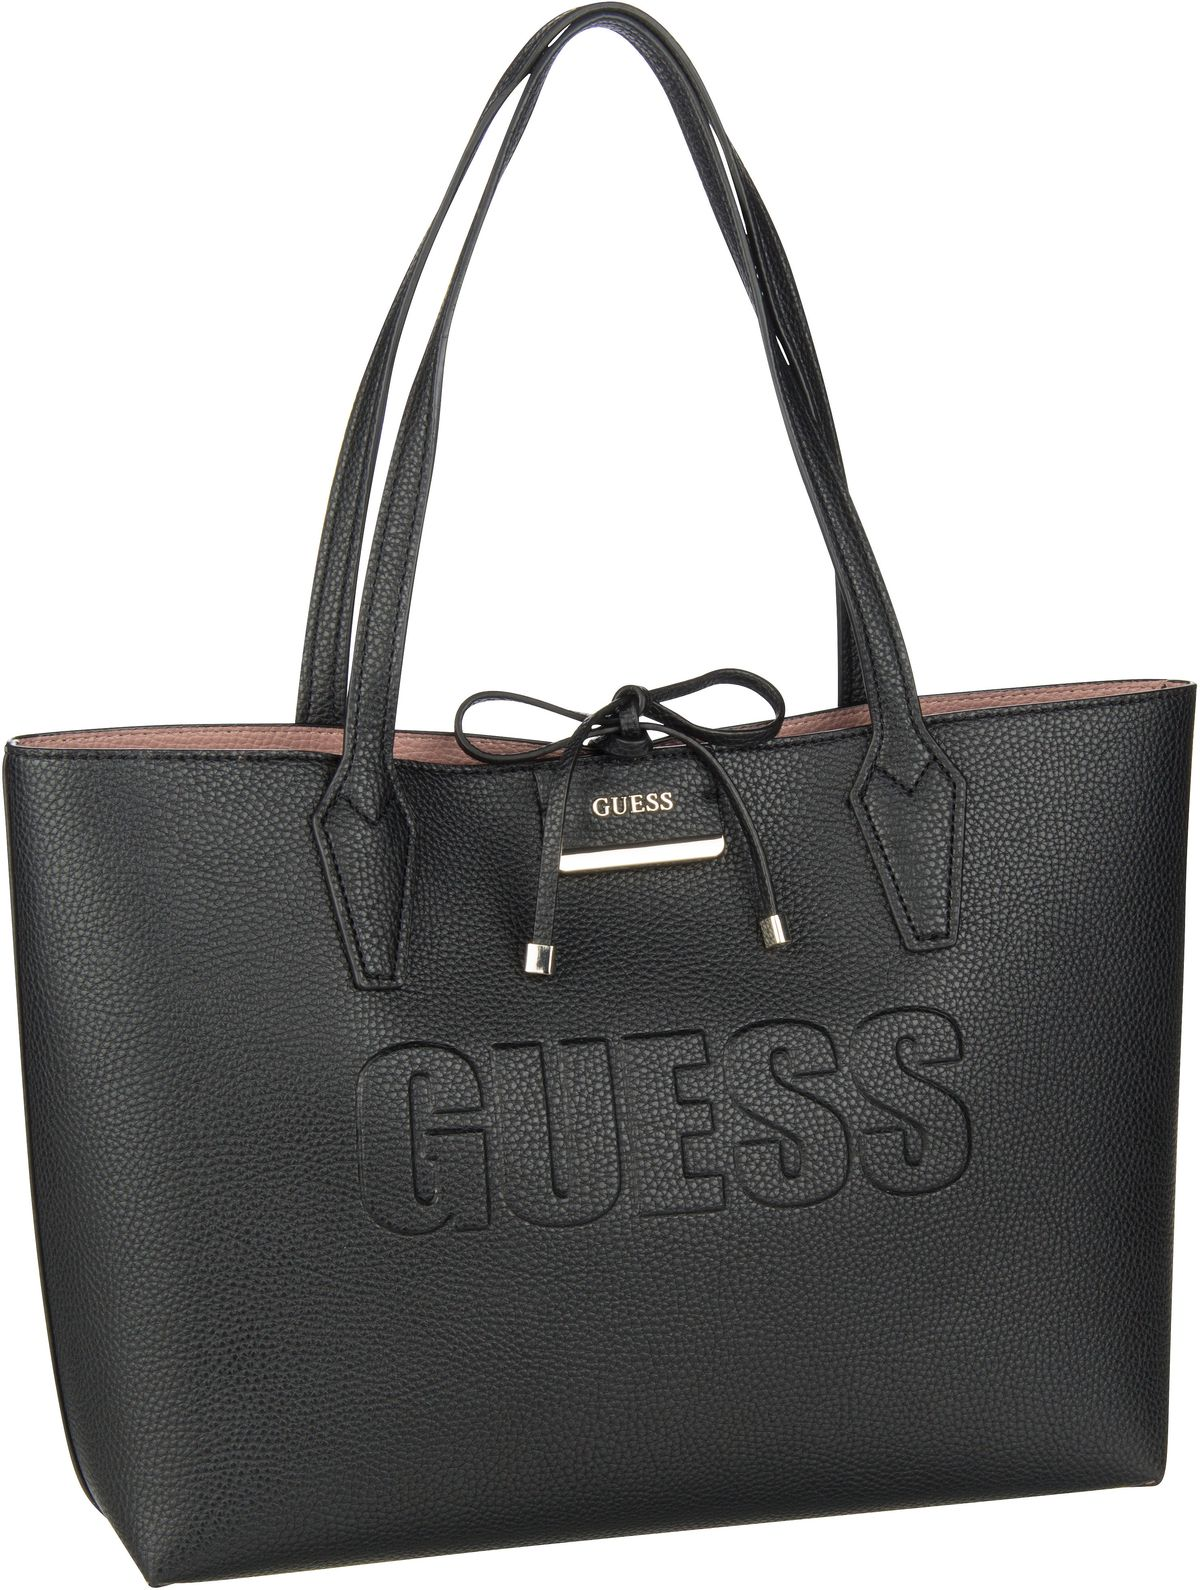 Shopper Bobbi AN Inside Out Tote Black/Rosewood